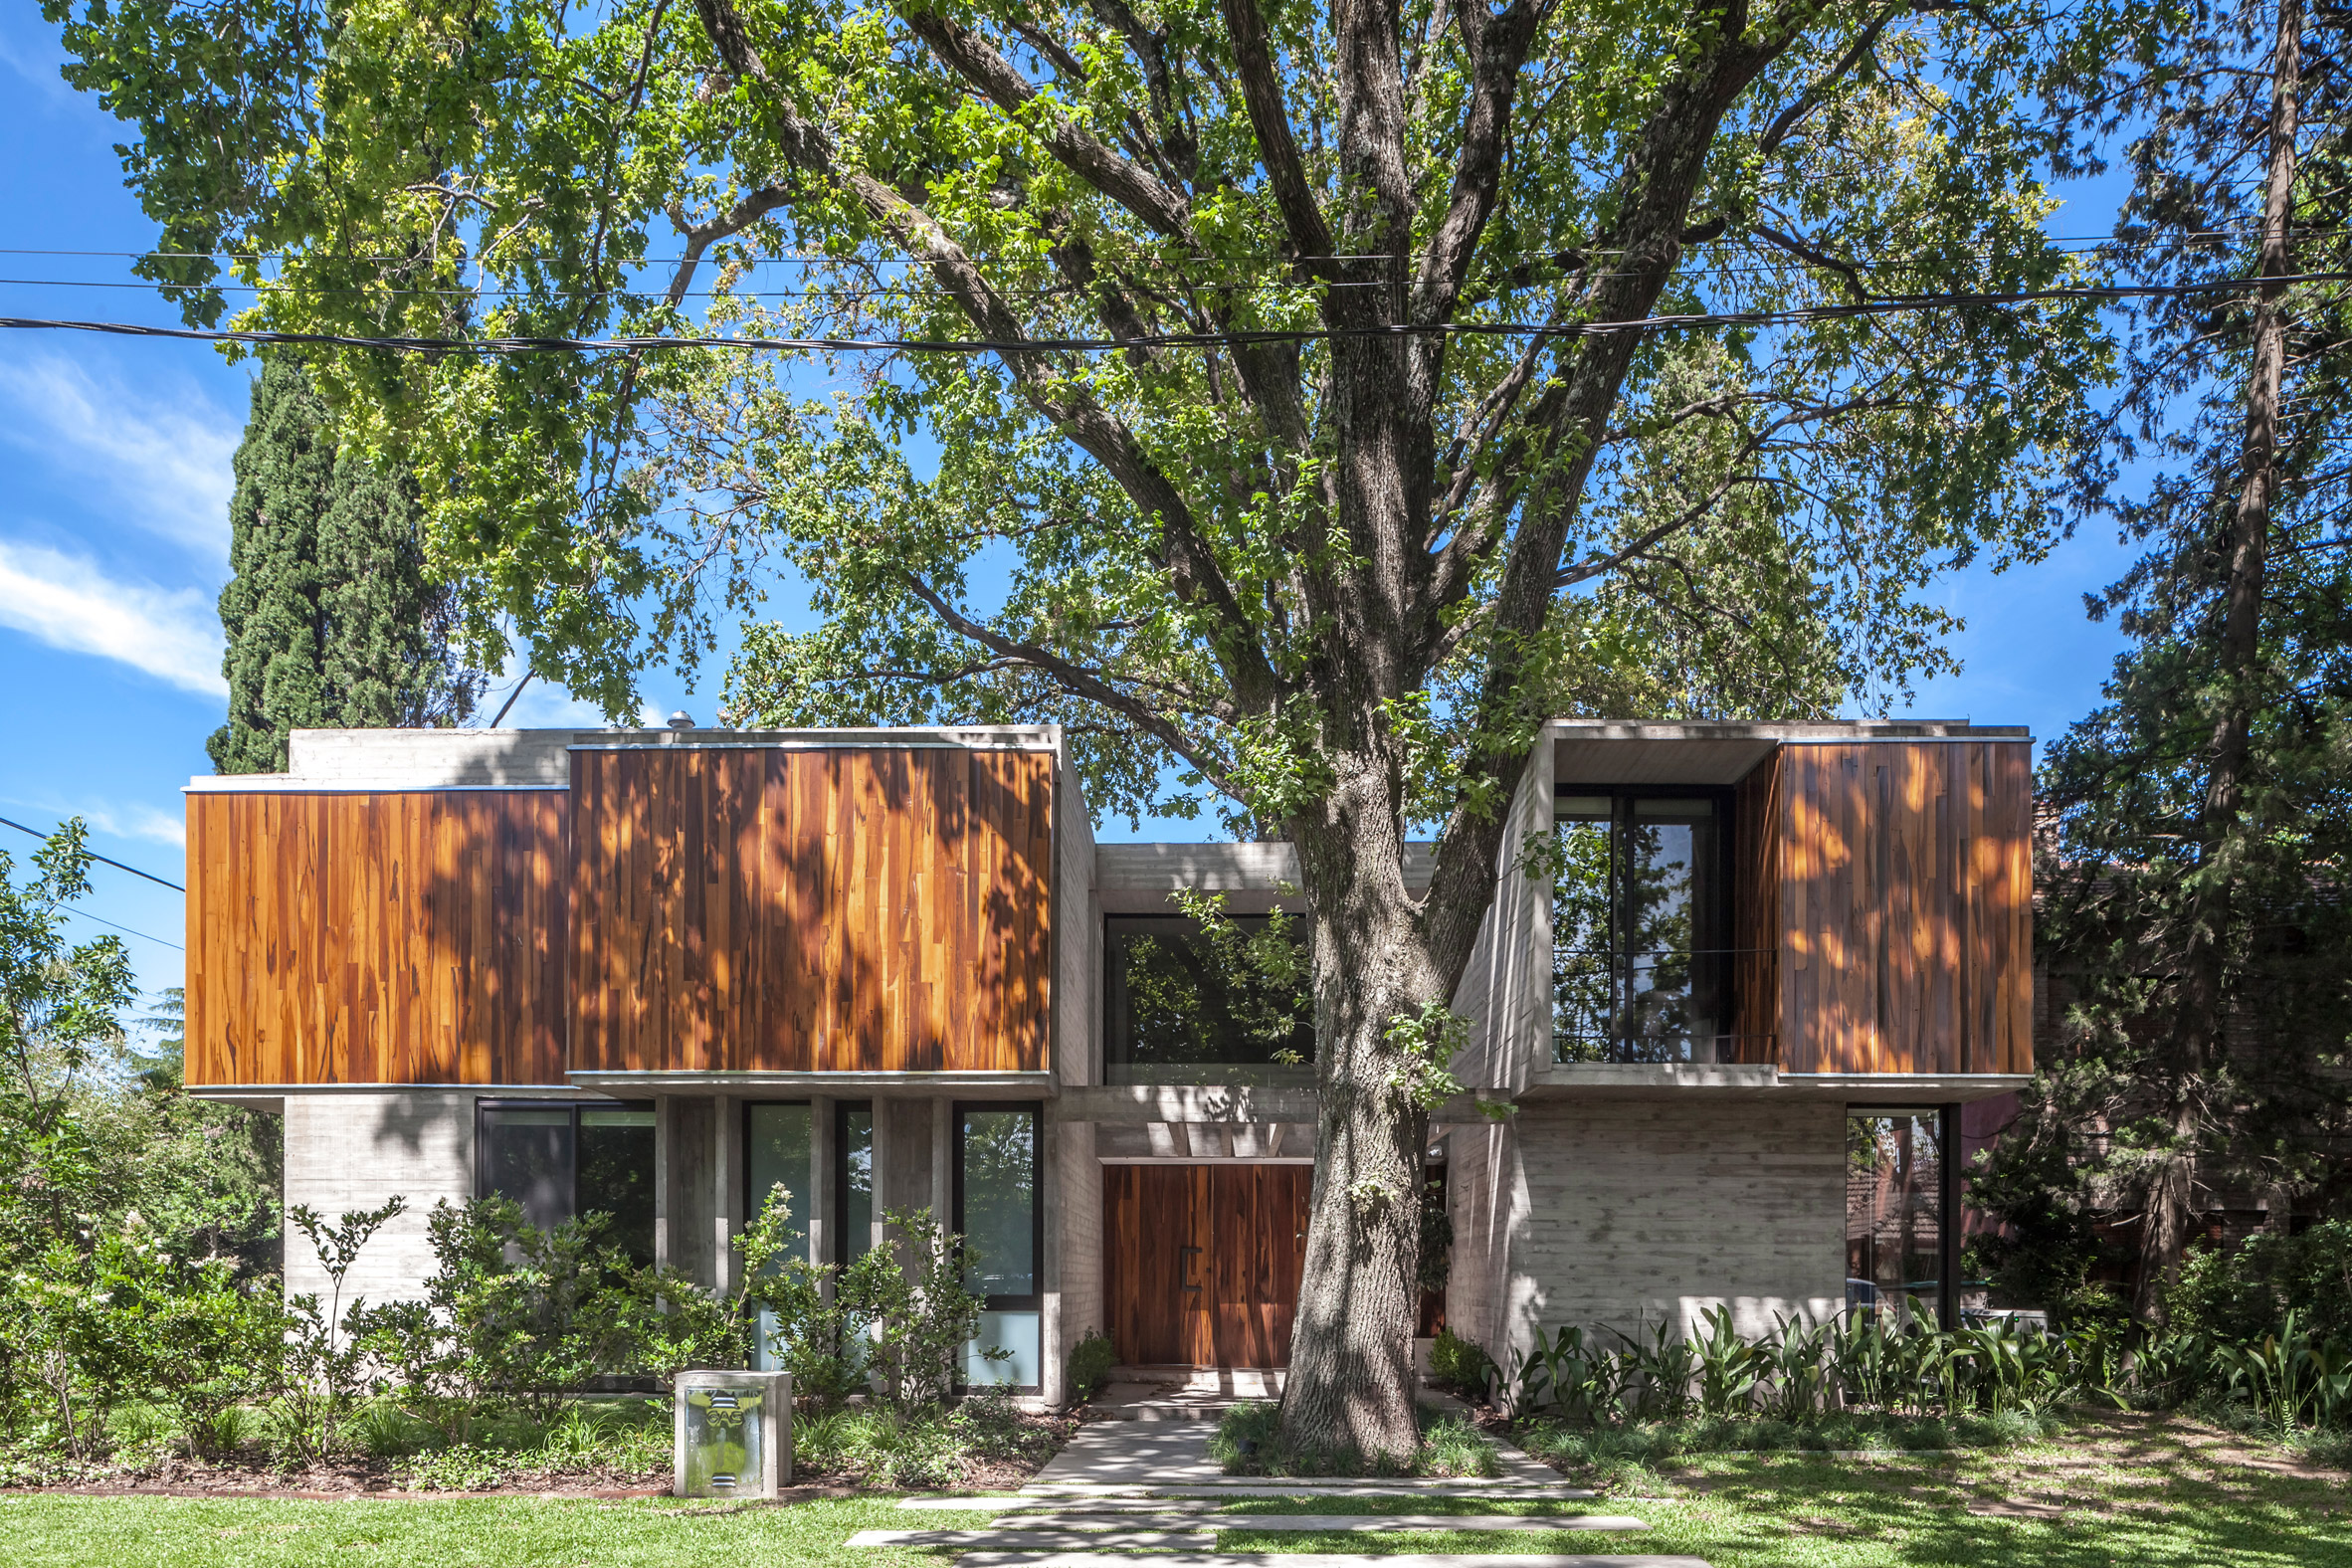 Concrete house in Buenos Aires by Besonías Almeida fits among mature trees